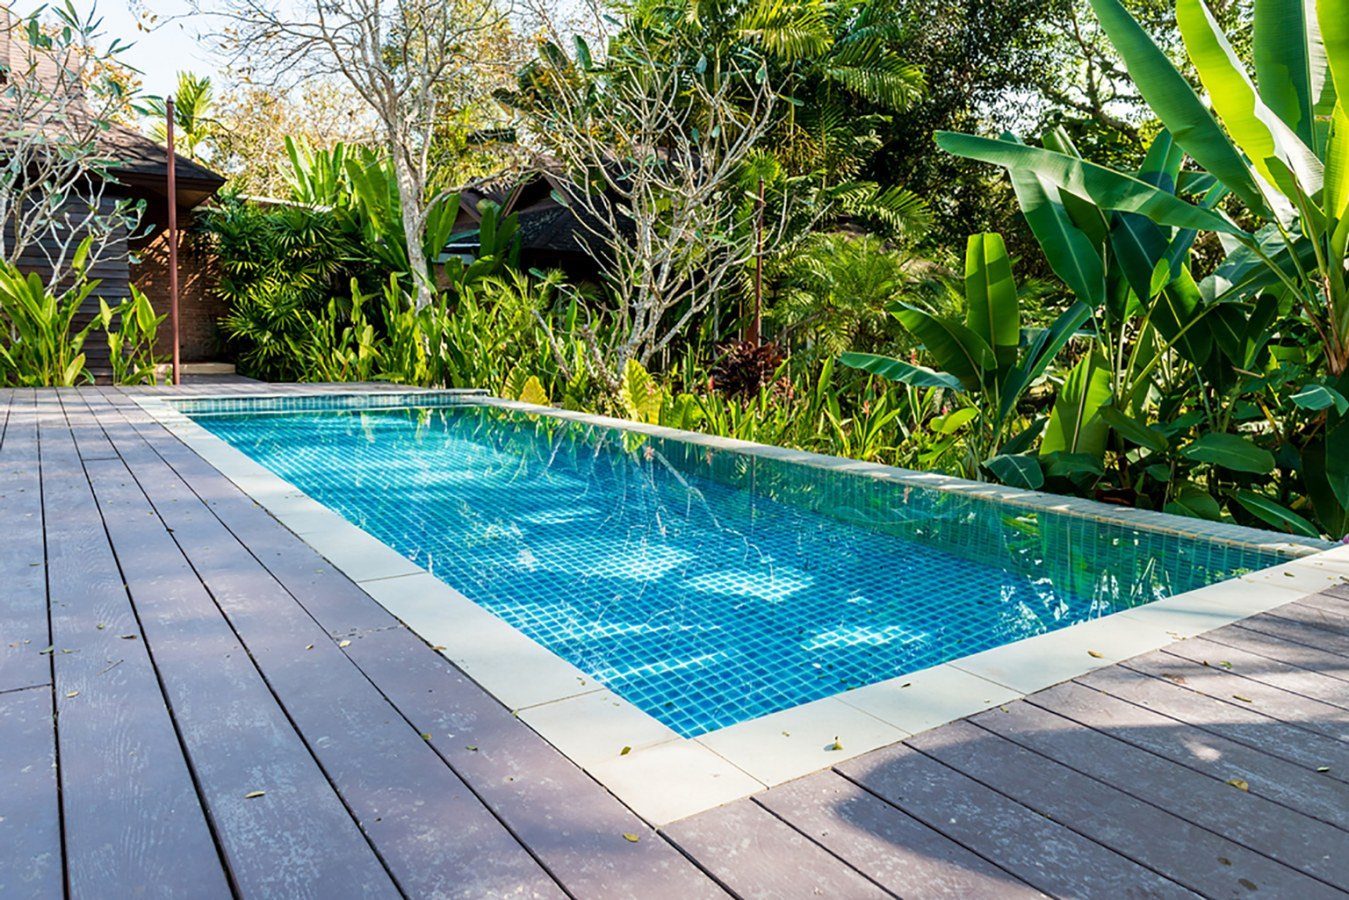 How To Maintain Your Pool Level In Super Hot Climate